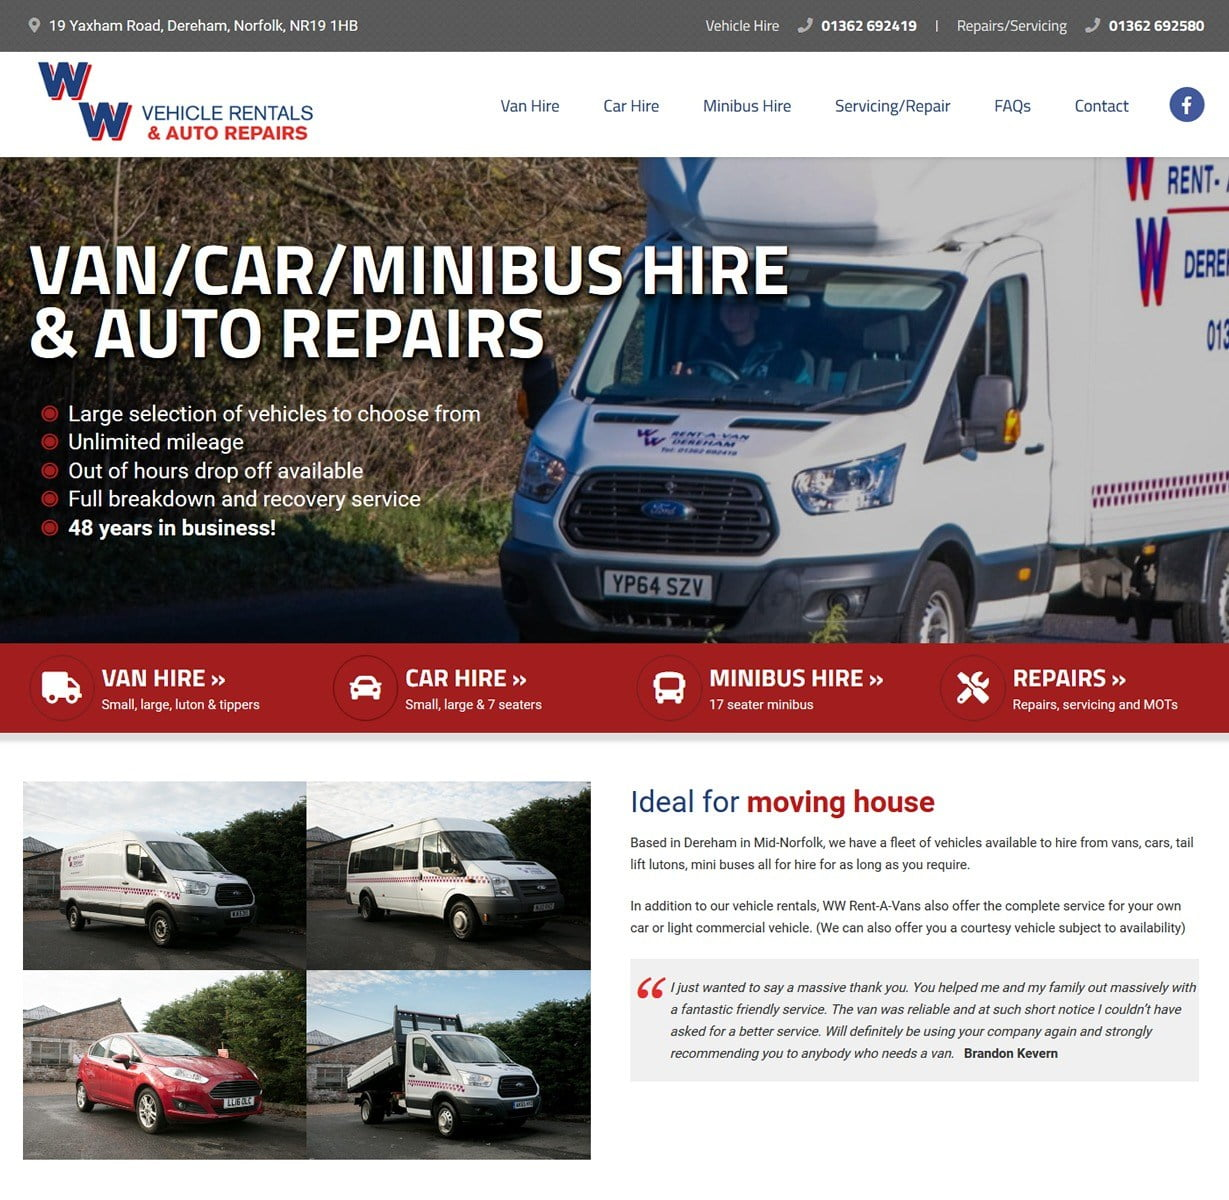 Website design for WW Rent A Van in Dereham, Norfolk